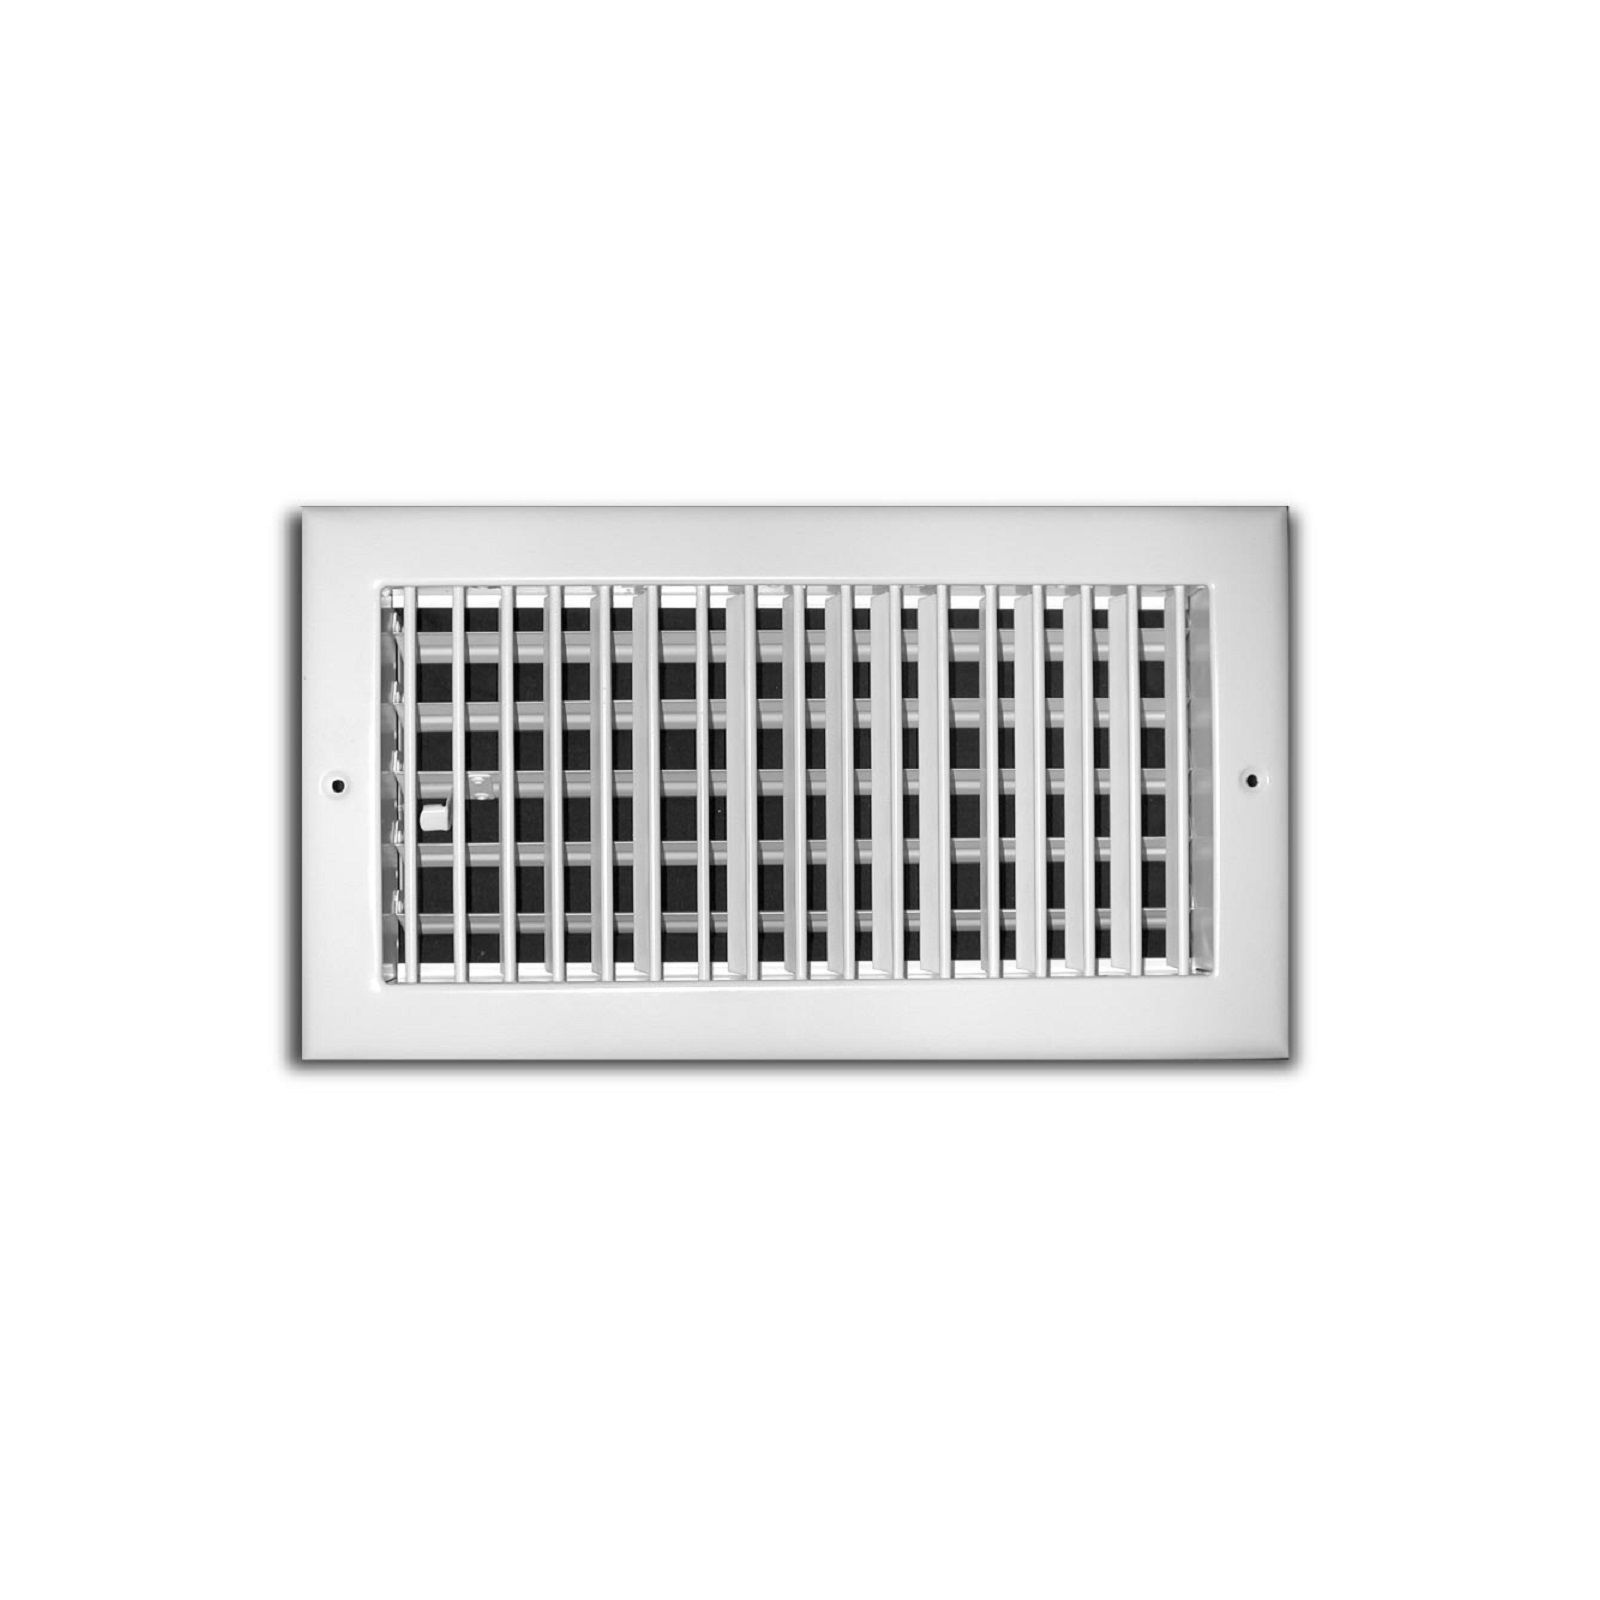 "TRUaire 210VM 06X06 - Steel Adjustable 1-Way Wall/Ceiling Register With Multi Shutter Damper, White, 06"" X 06"""